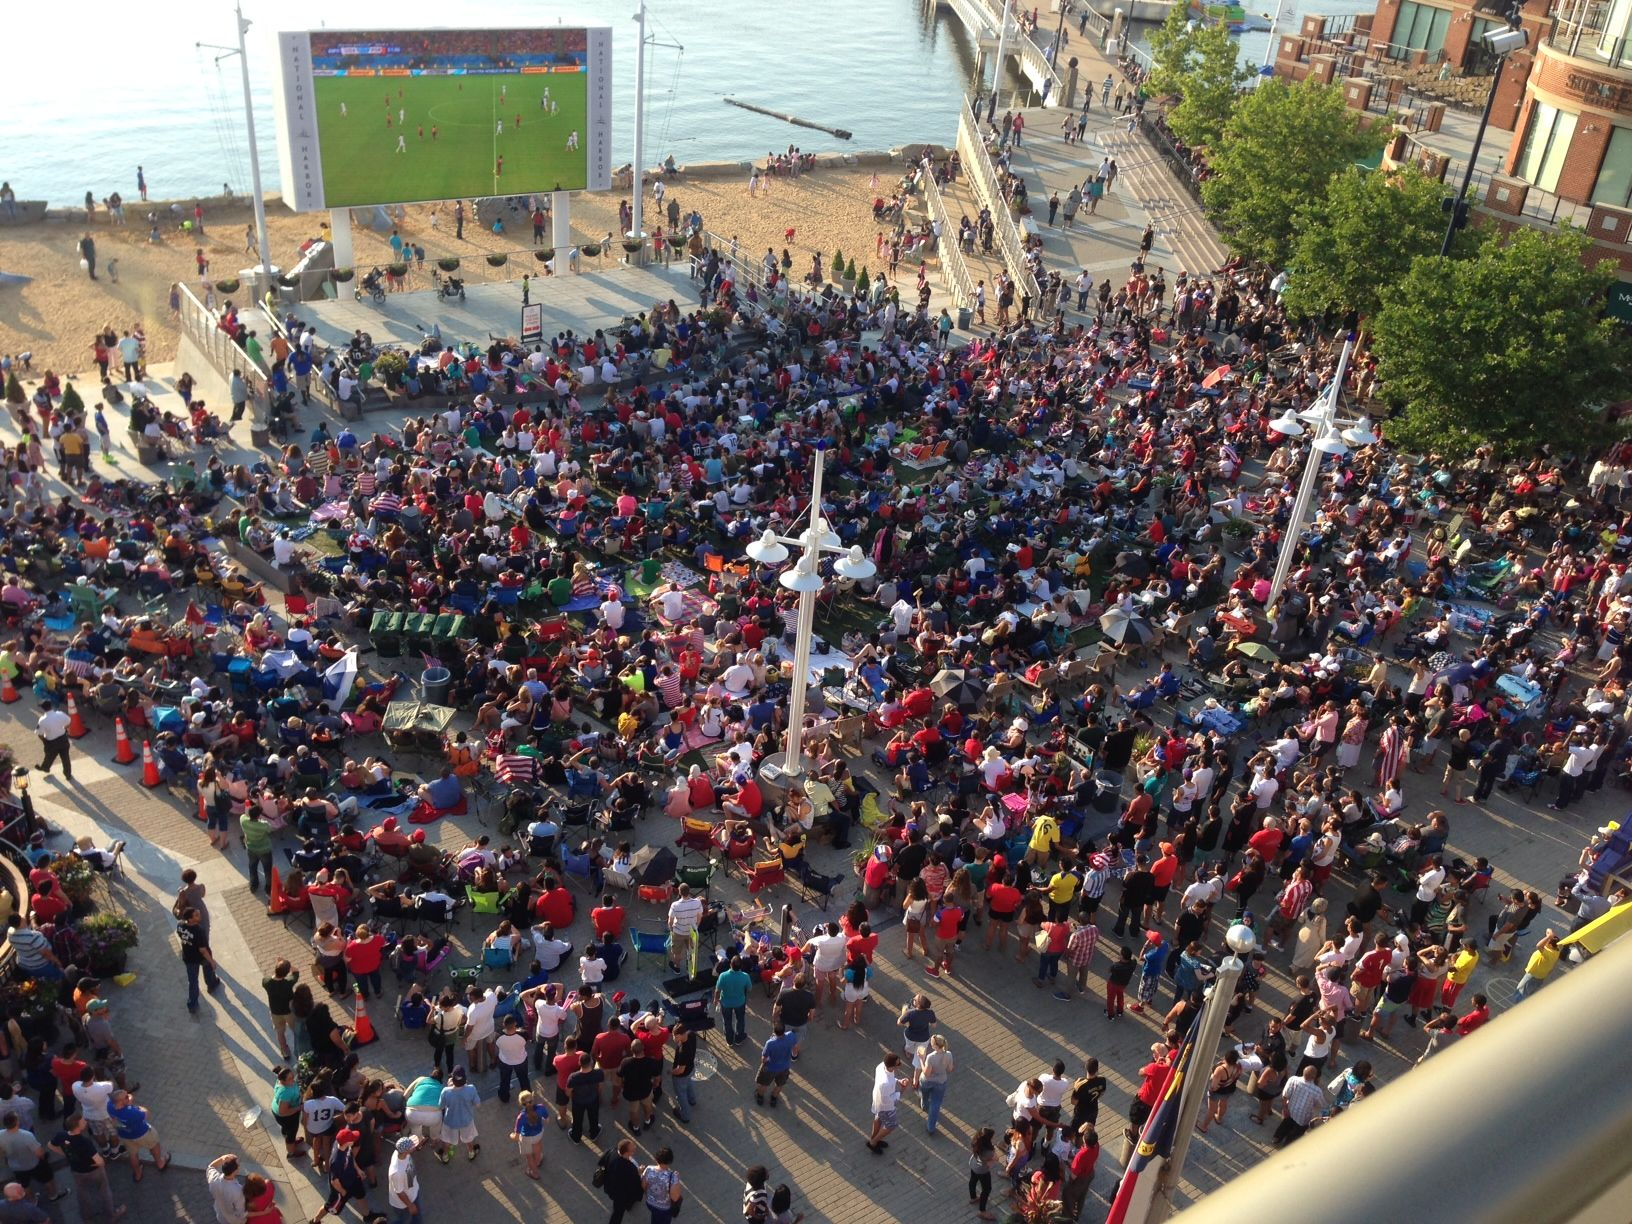 Overhead view of a watch party at National Harbor, where the women's World Cup will be shown on the big movie screen. (Courtesy National Harbor)